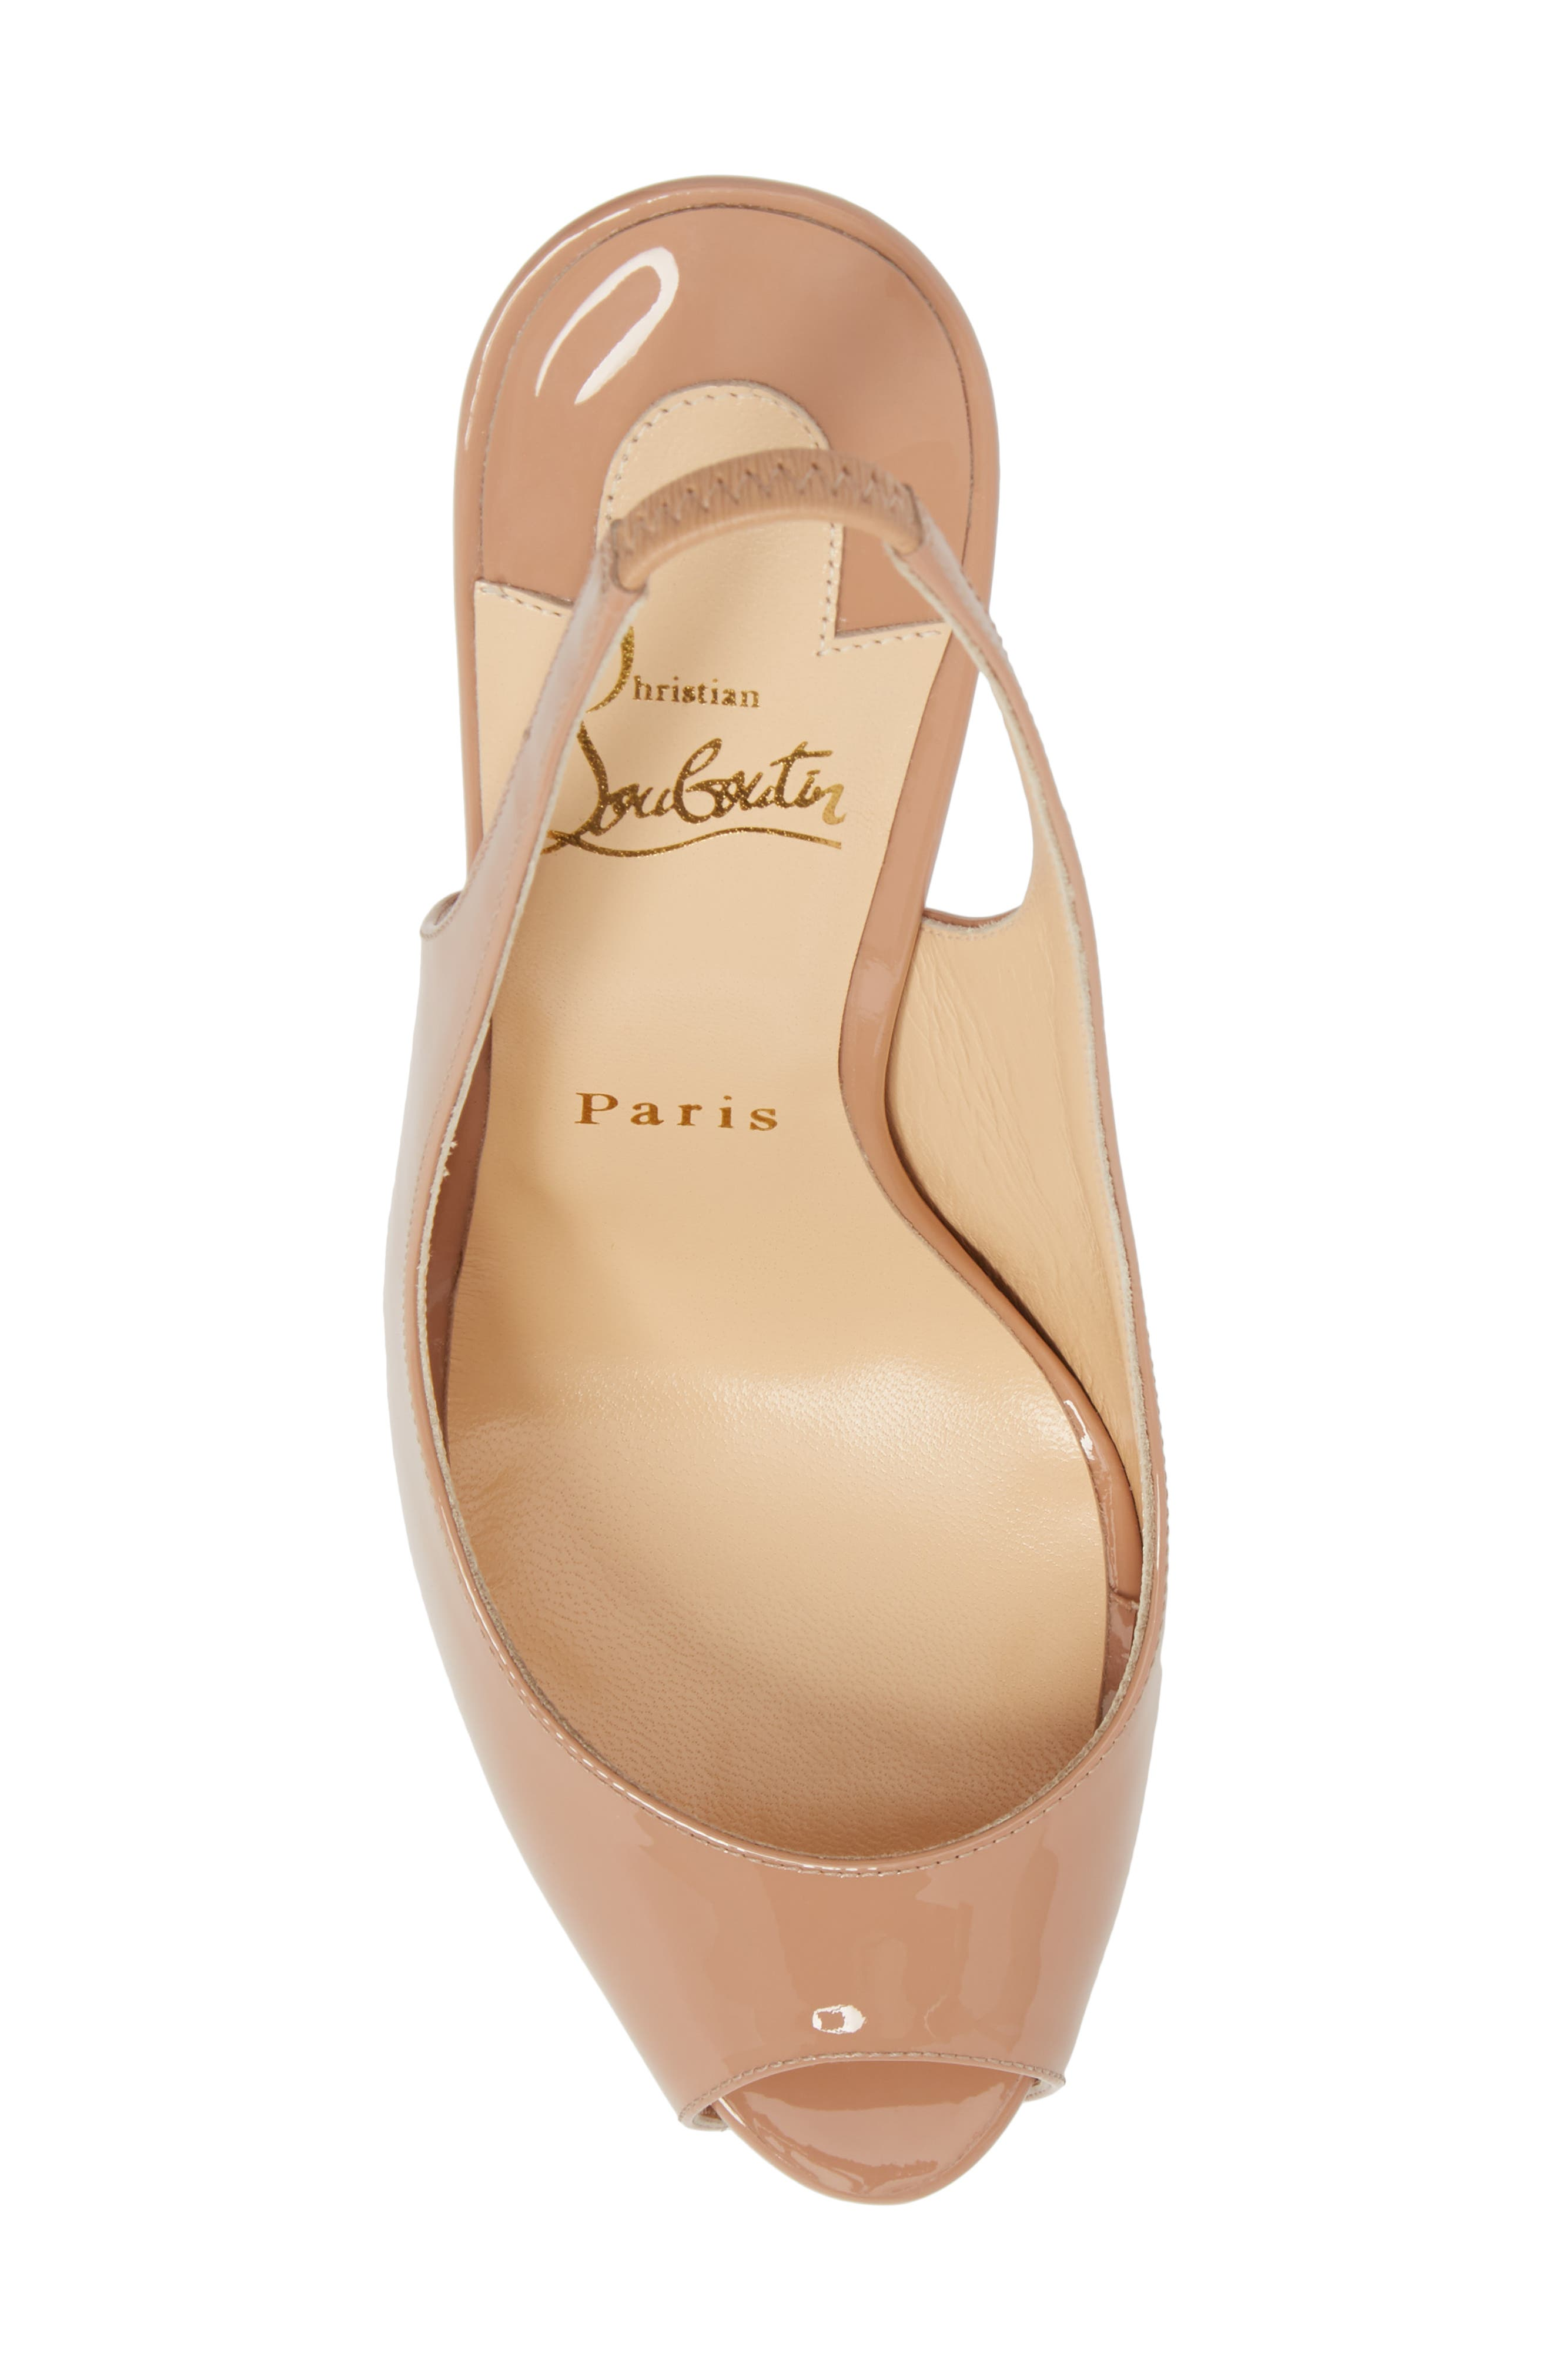 CHRISTIAN LOUBOUTIN,                             Private Number Peep Toe Pump,                             Alternate thumbnail 5, color,                             NUDE